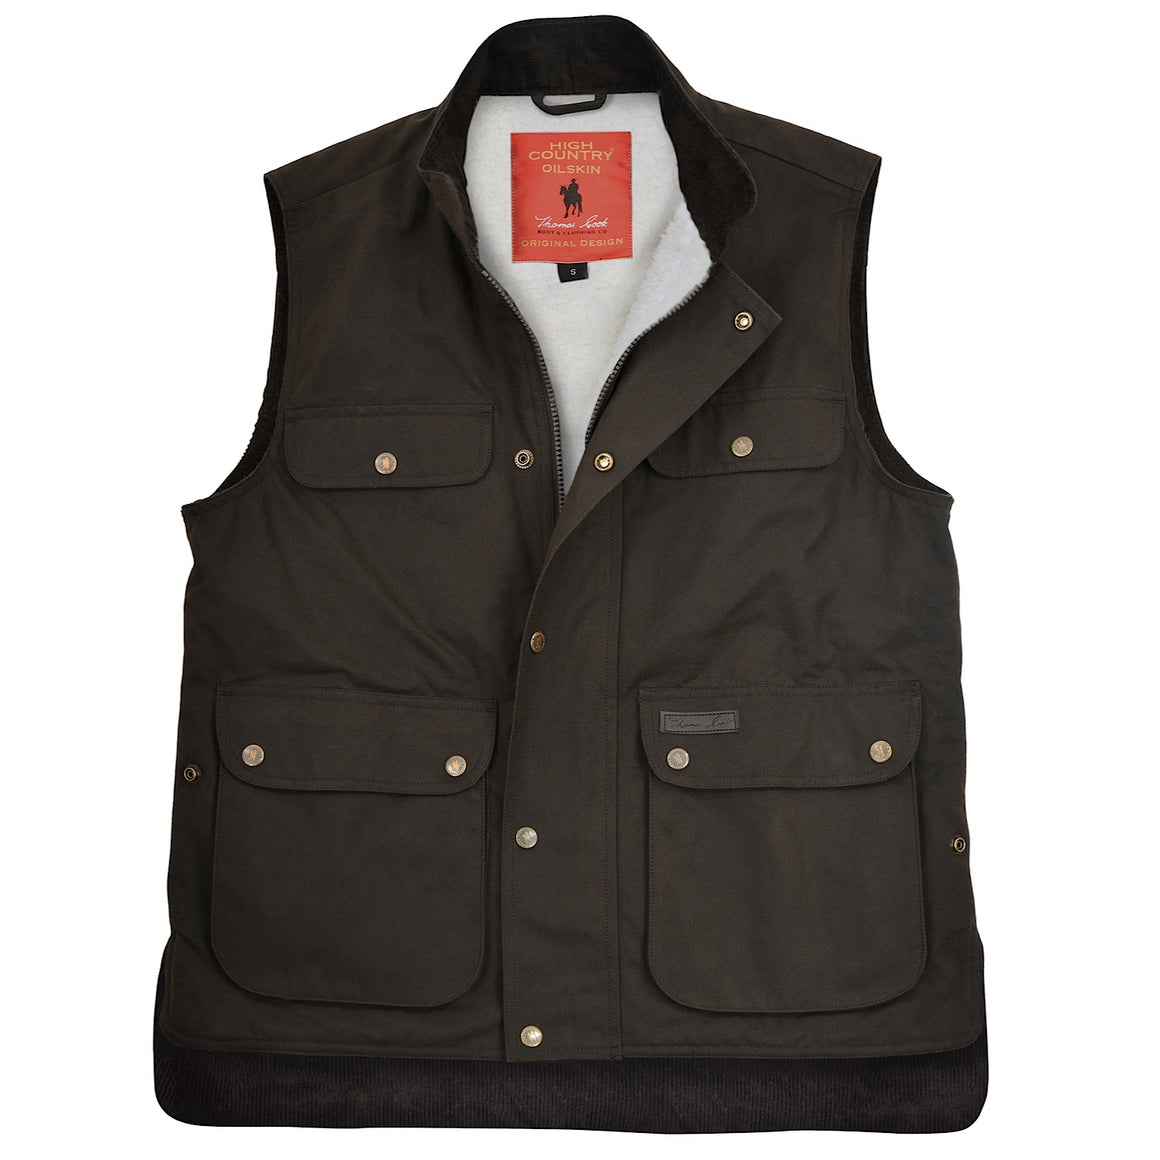 Thomas Cook Mens High Country Professional Oilskin Sherpa Vest Rustic Mulch